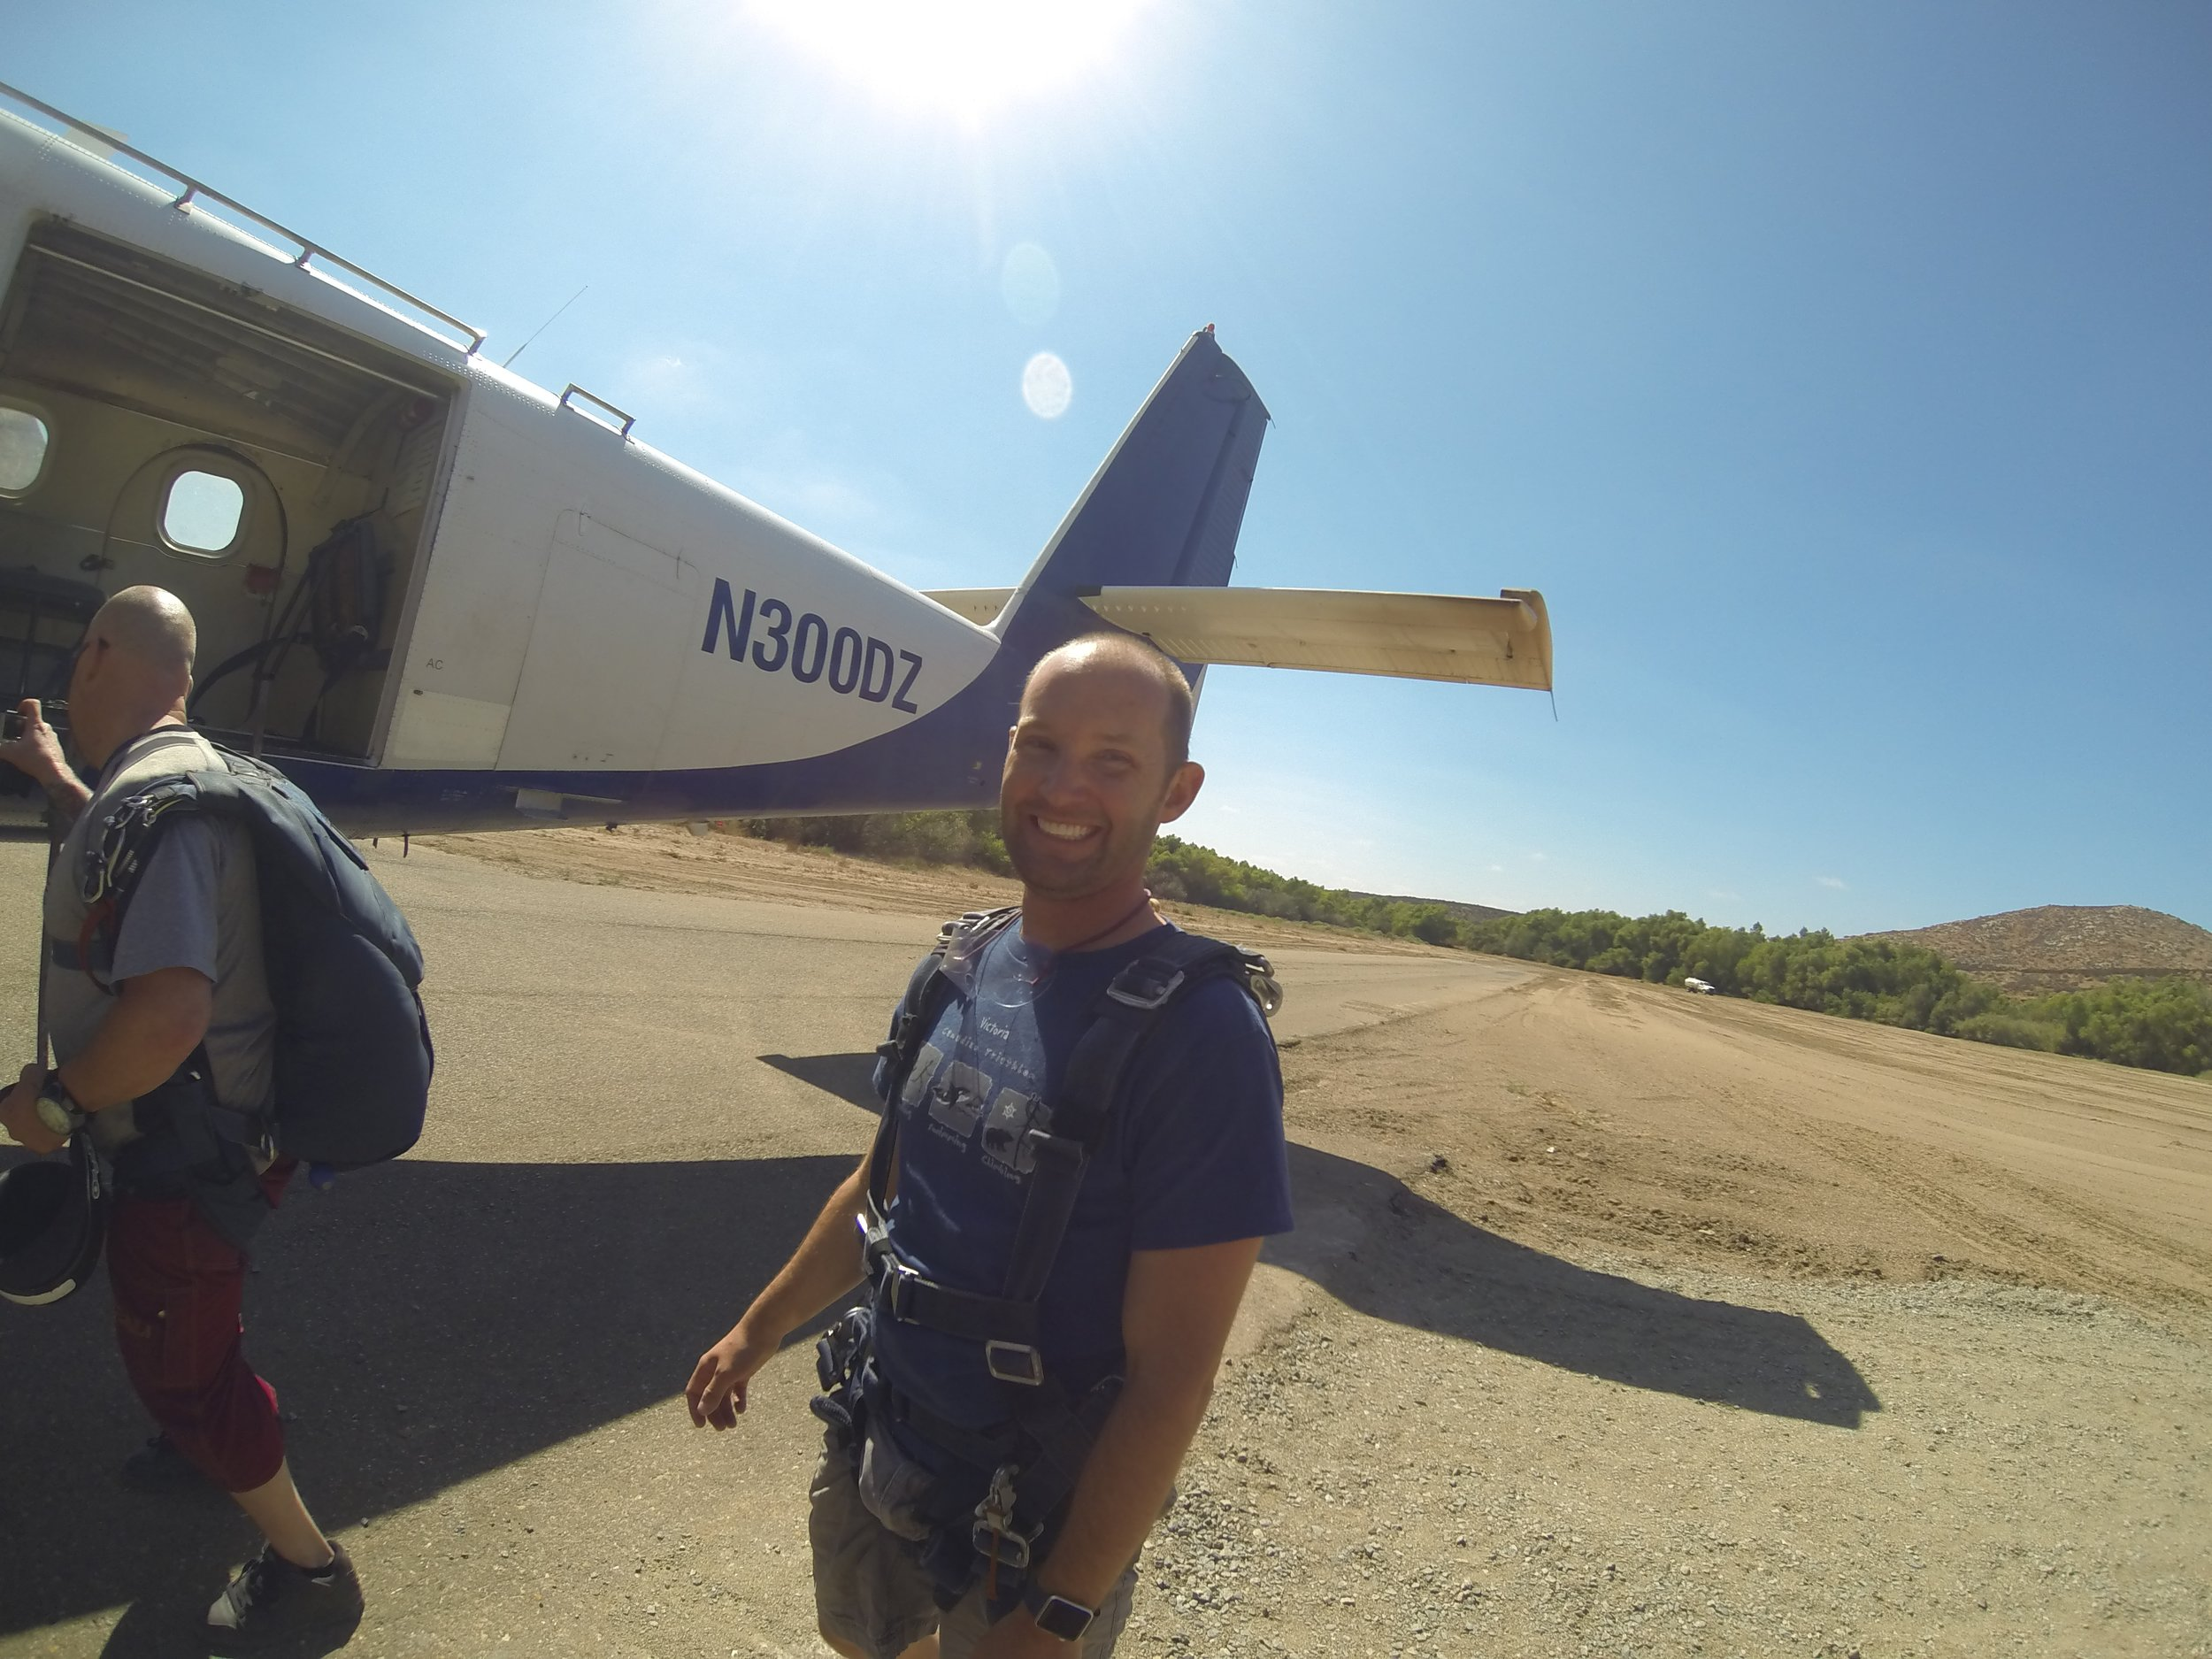 Boarding the plane, Skydive San Diego